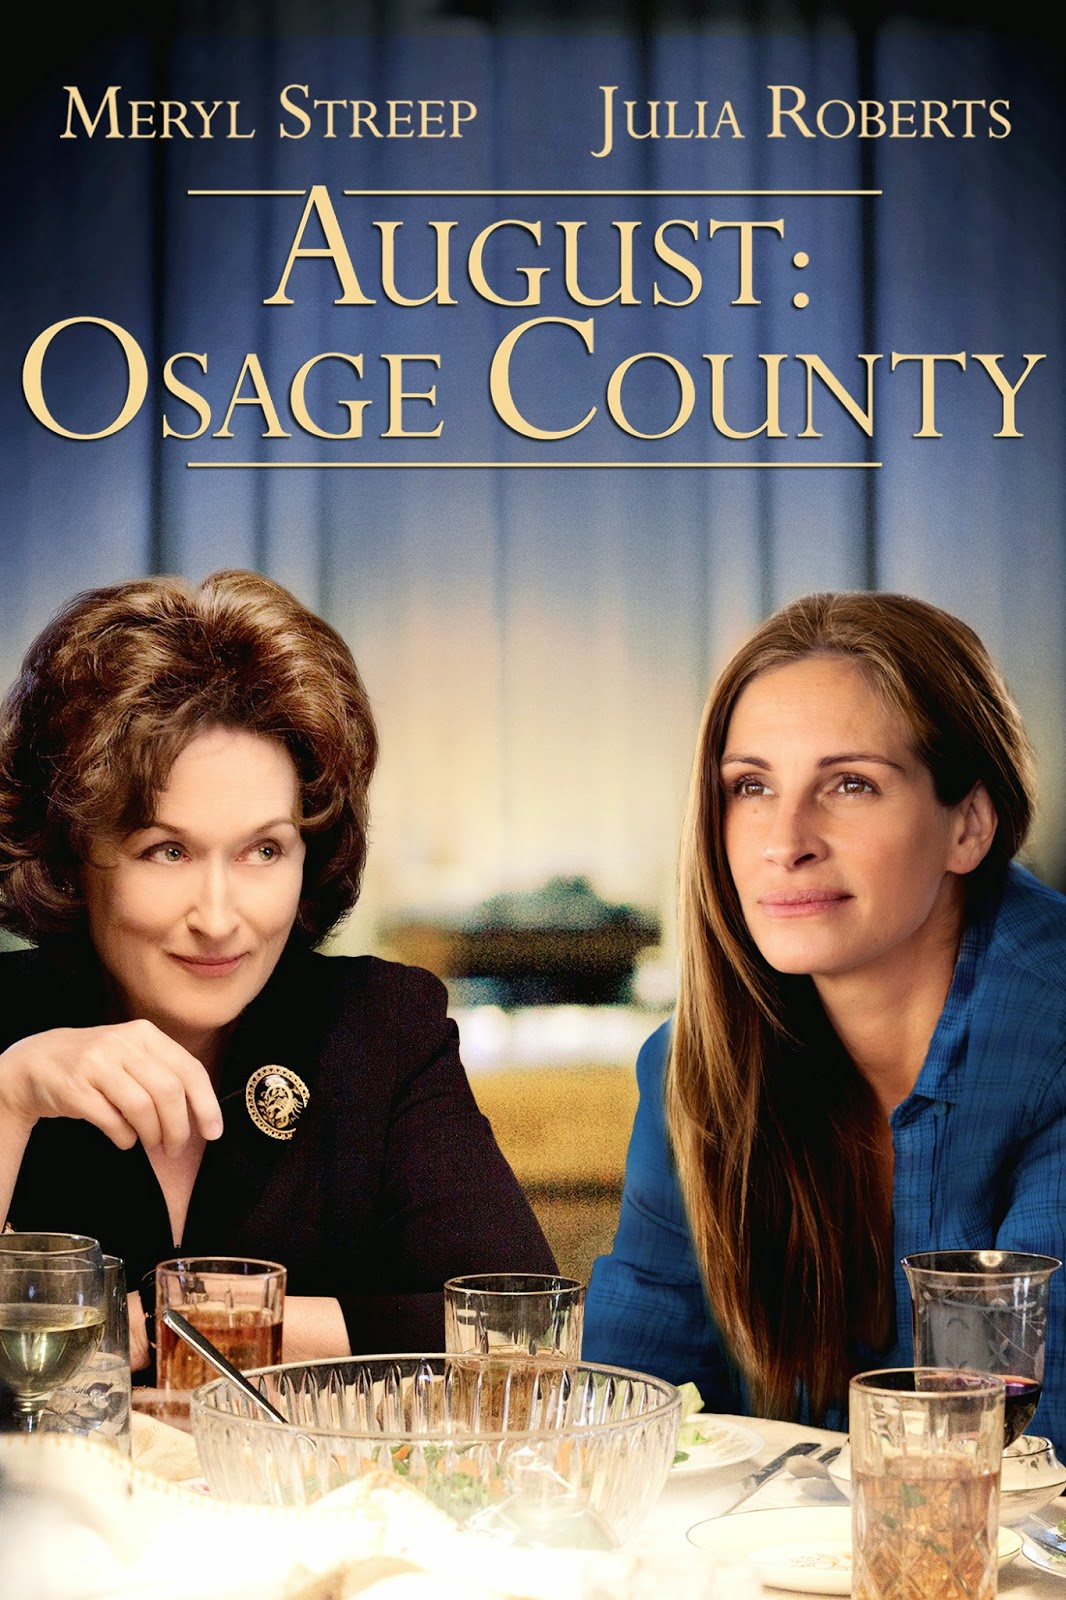 August: Osage County — 3.5 out of 5 stars